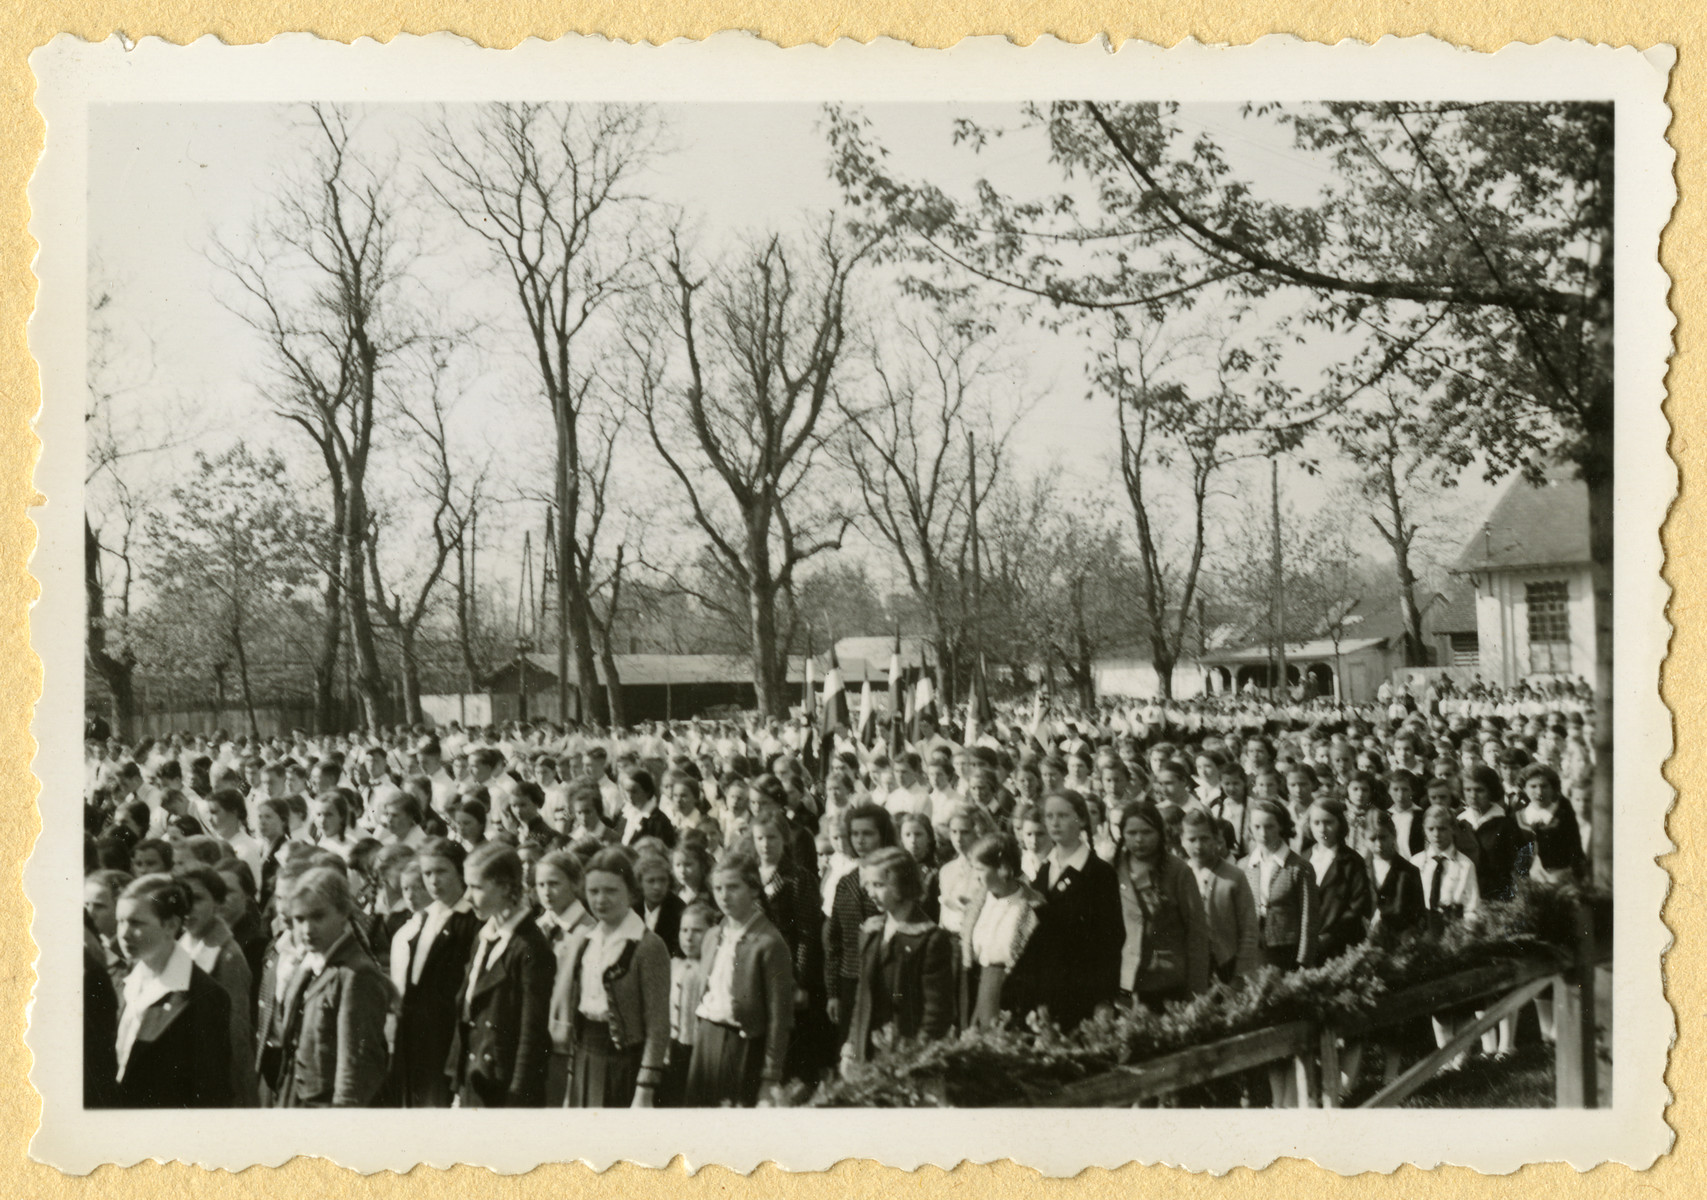 German girls stand at attention at a large outdoor gathering.